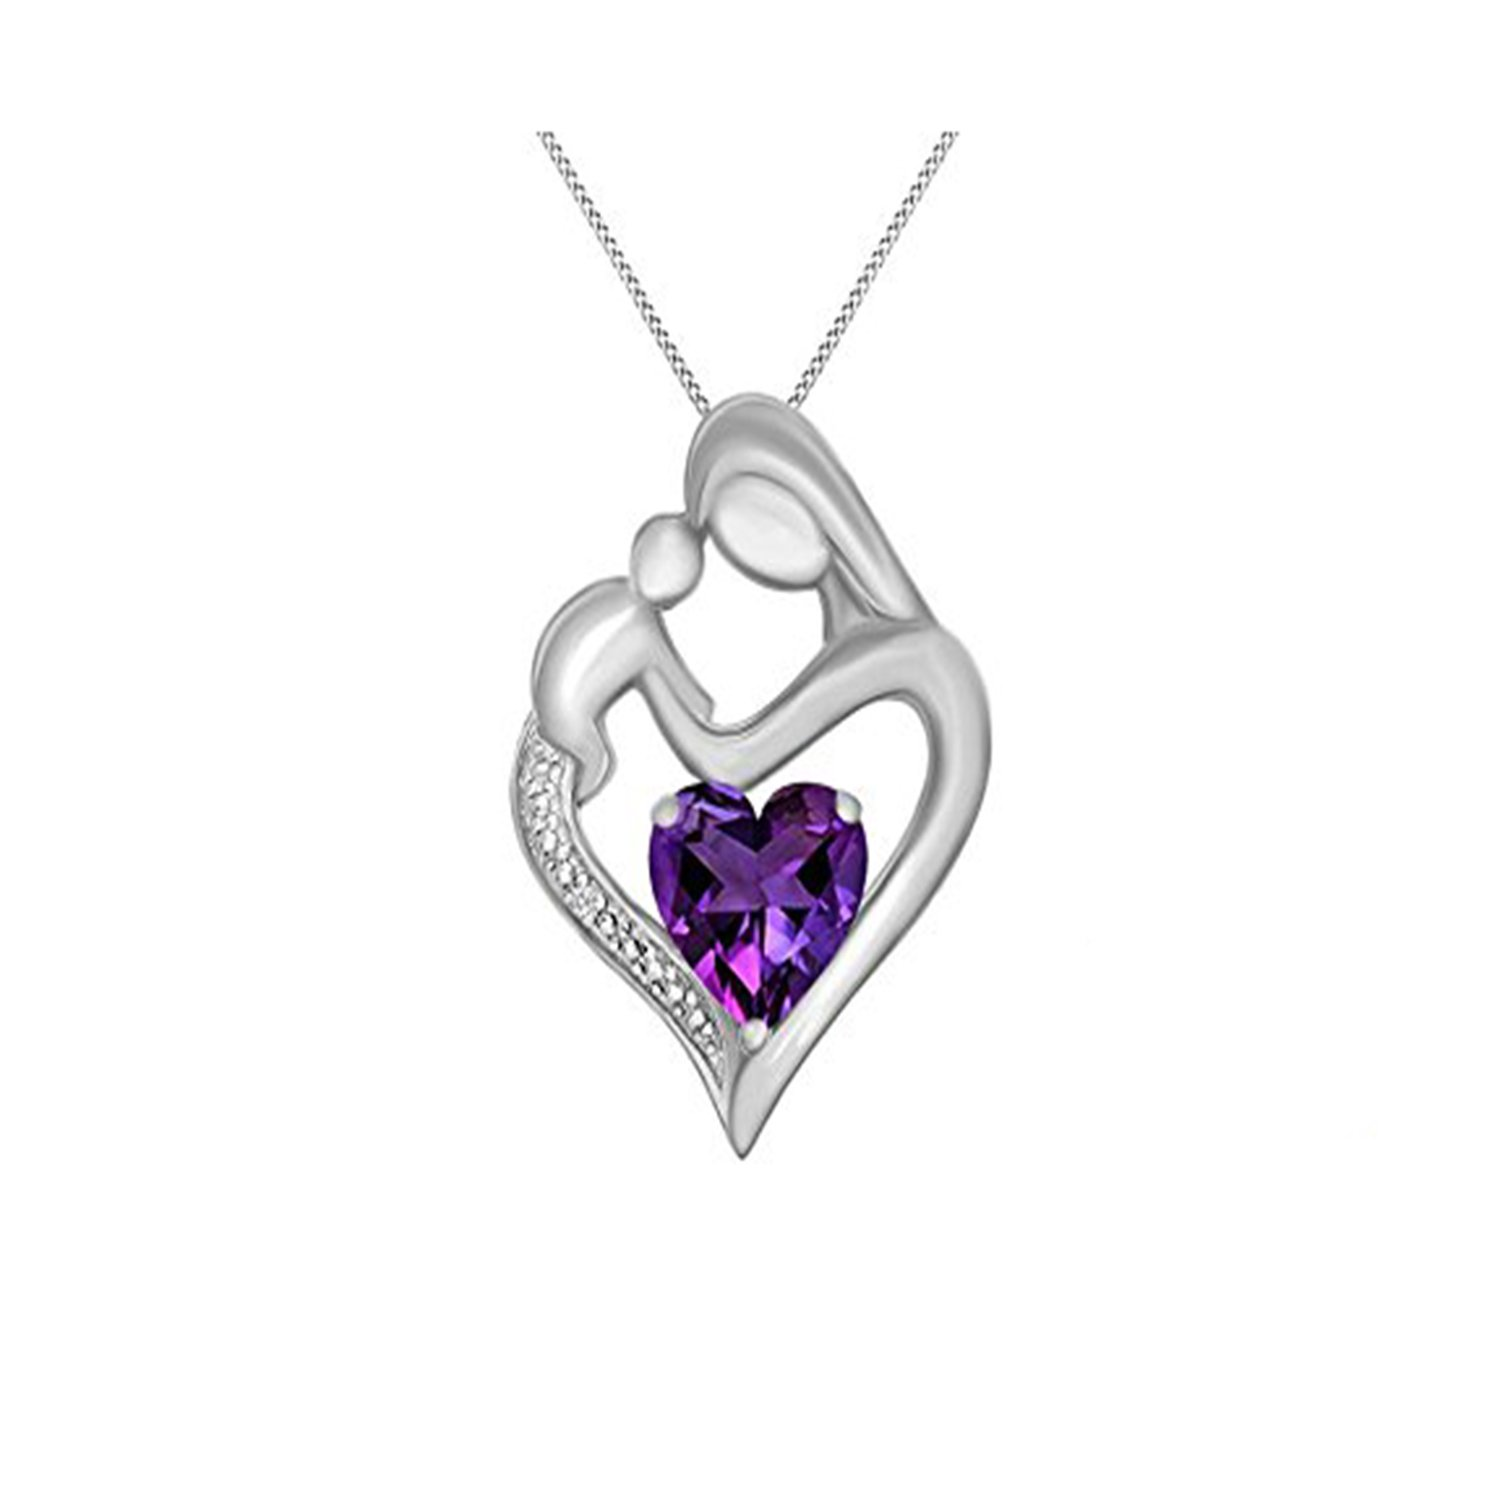 Simulated Diamond Studded Elegant Fashion Charm Heart MOM Pendant Necklace in 14K White Gold Plated With Box Chain